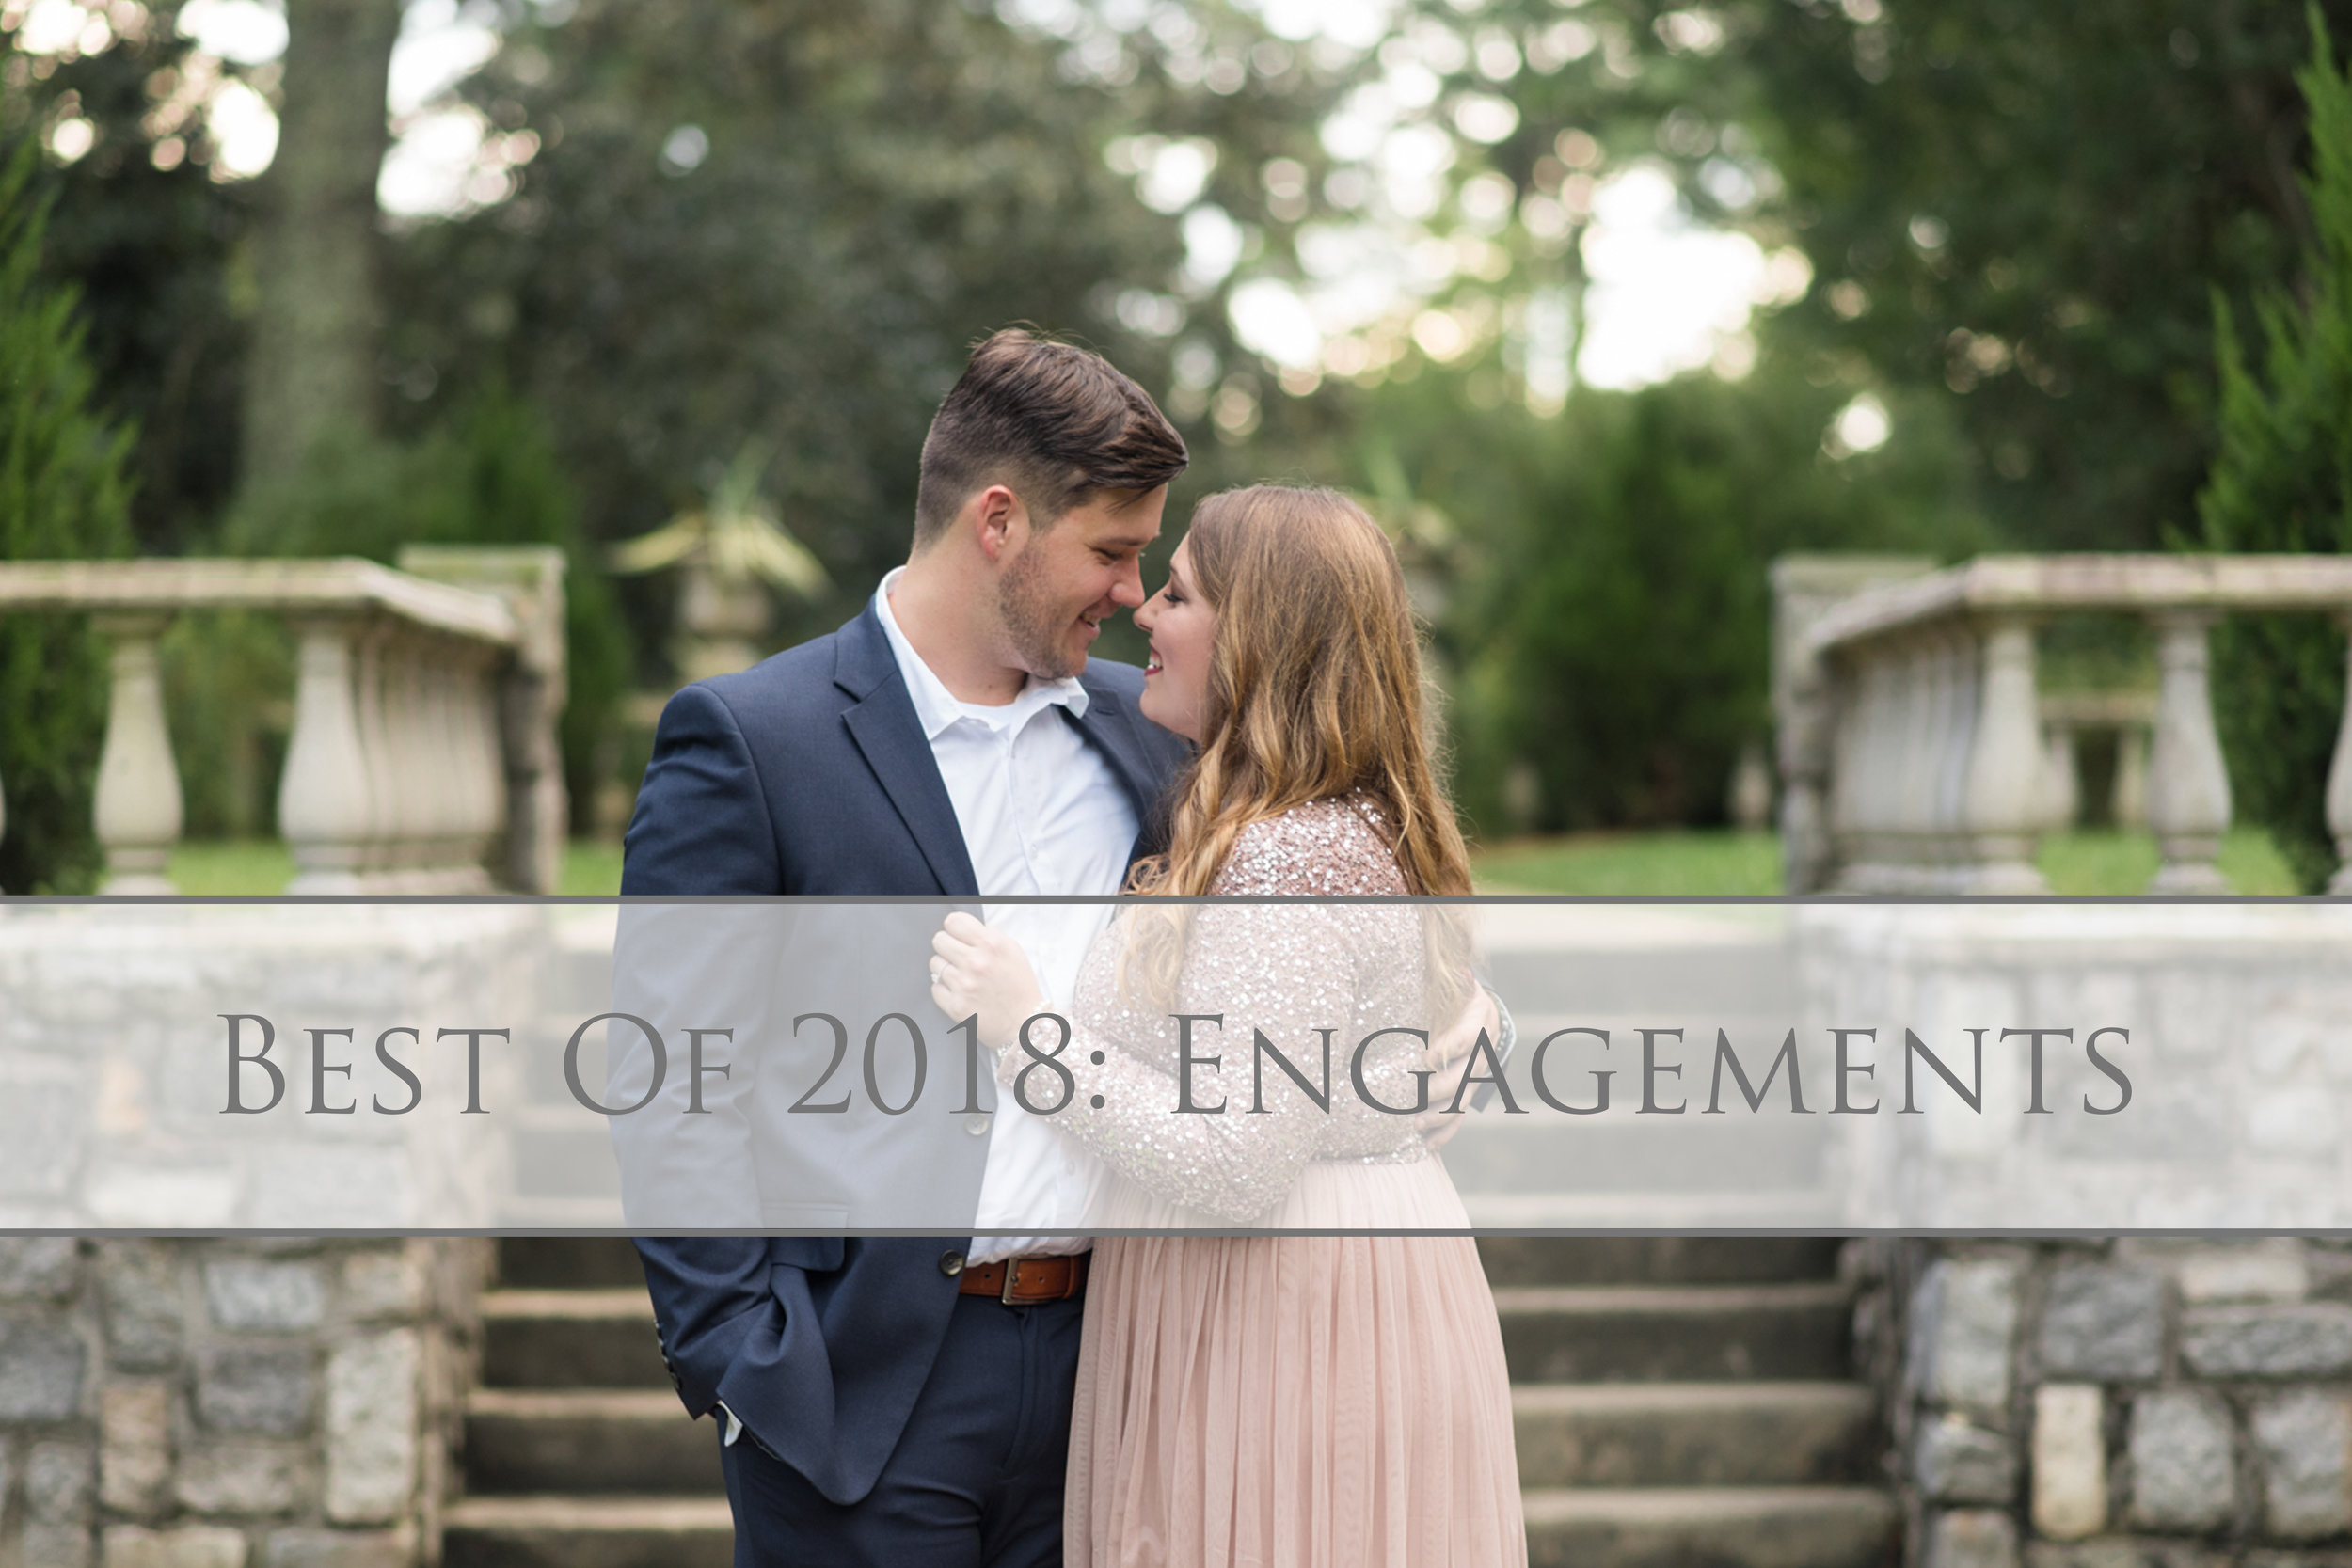 Best of 2018 Engagements.jpg